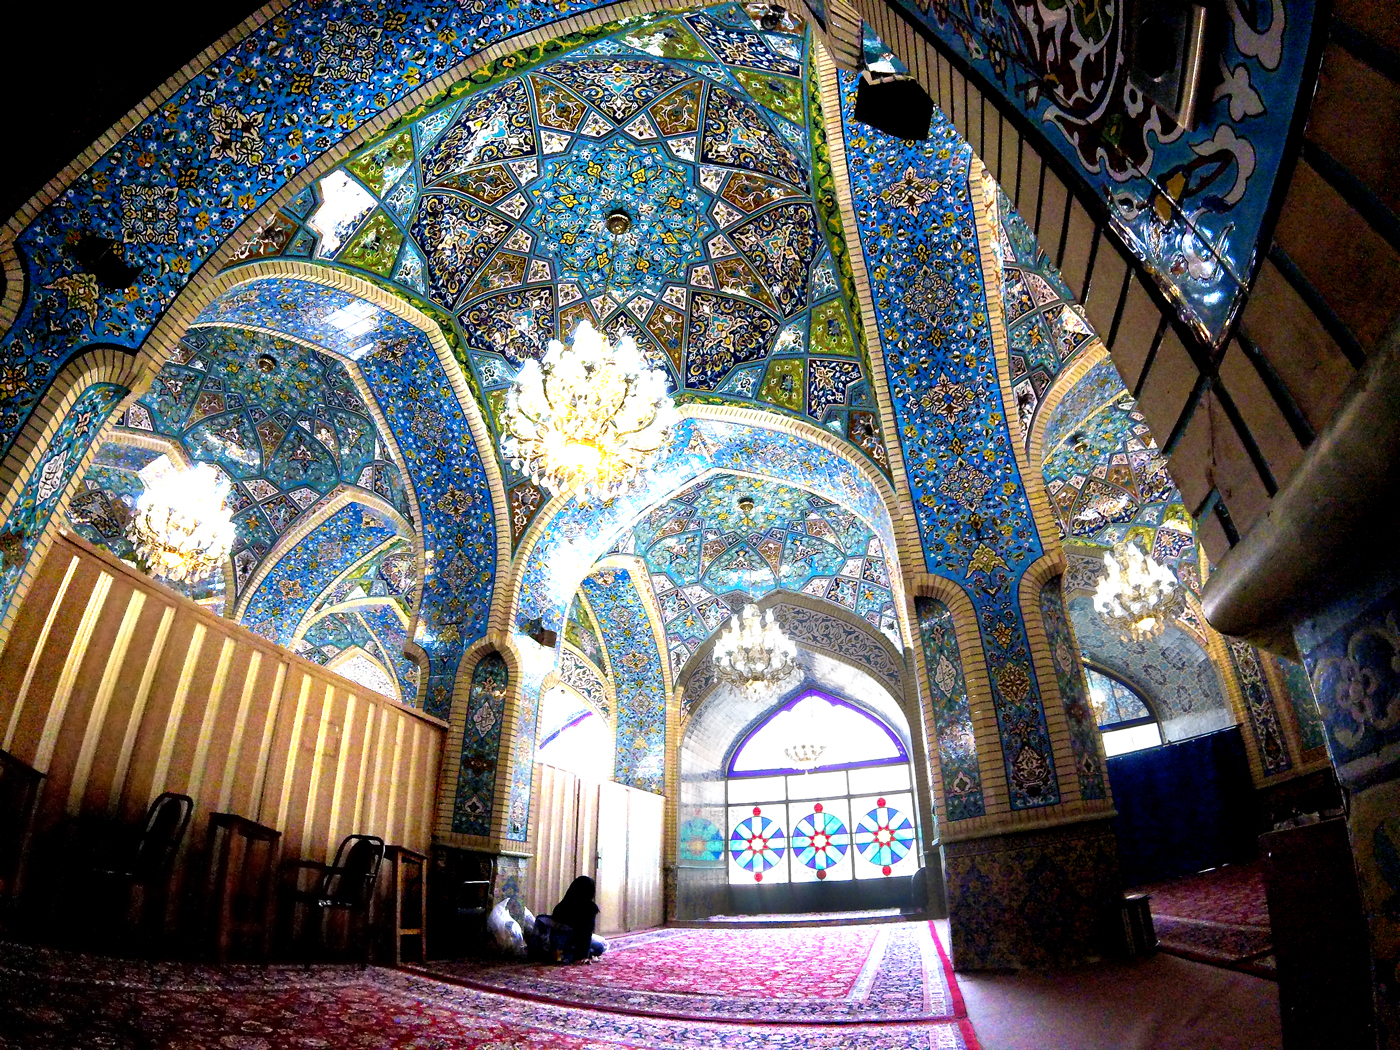 Bike trip, cross Iran by bike, inside a mosque in Tehran. Cycling travel, biketouring, cycling Iran, interior of a mosque in Tehran.